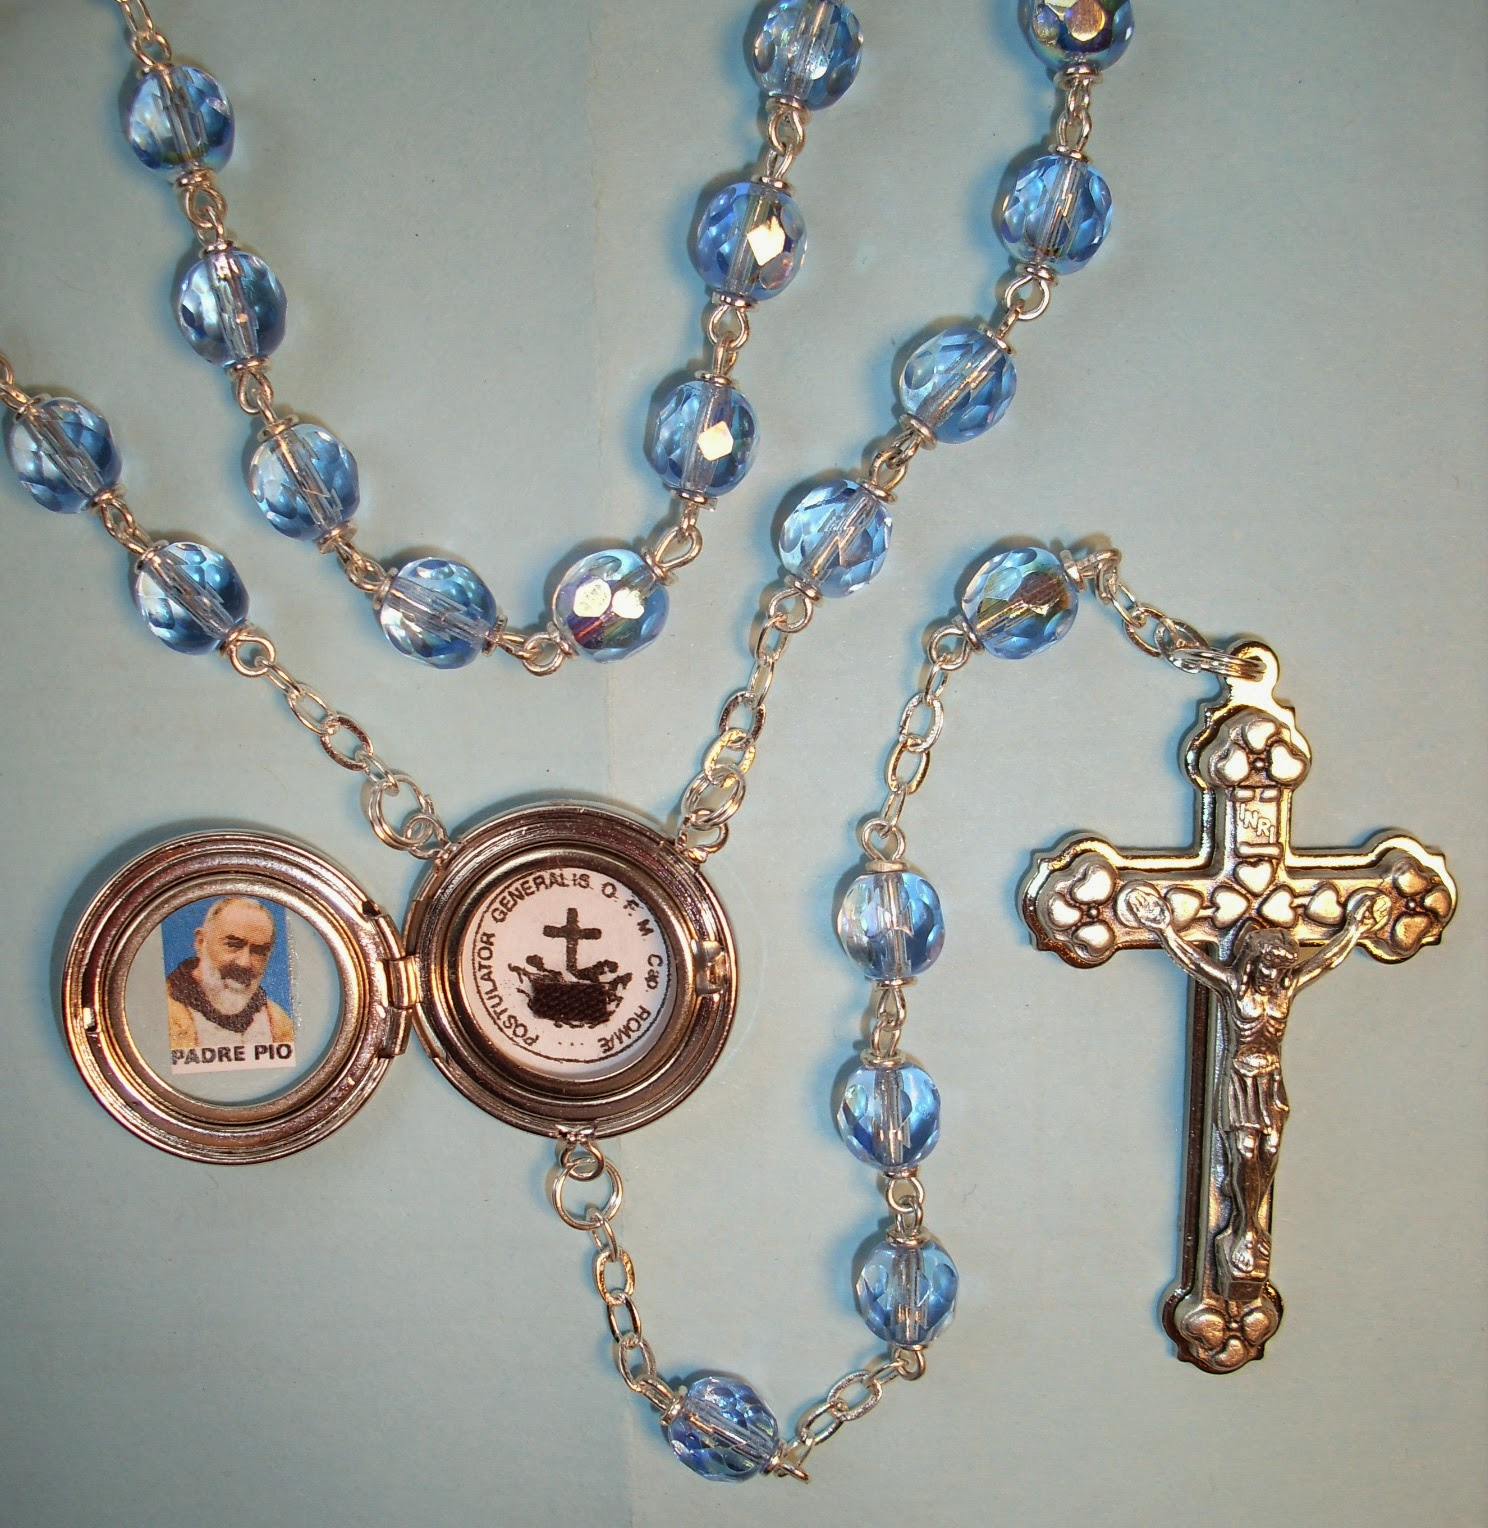 Check out the Rosaries & other items available over at the Mystics of the Church Gift Store